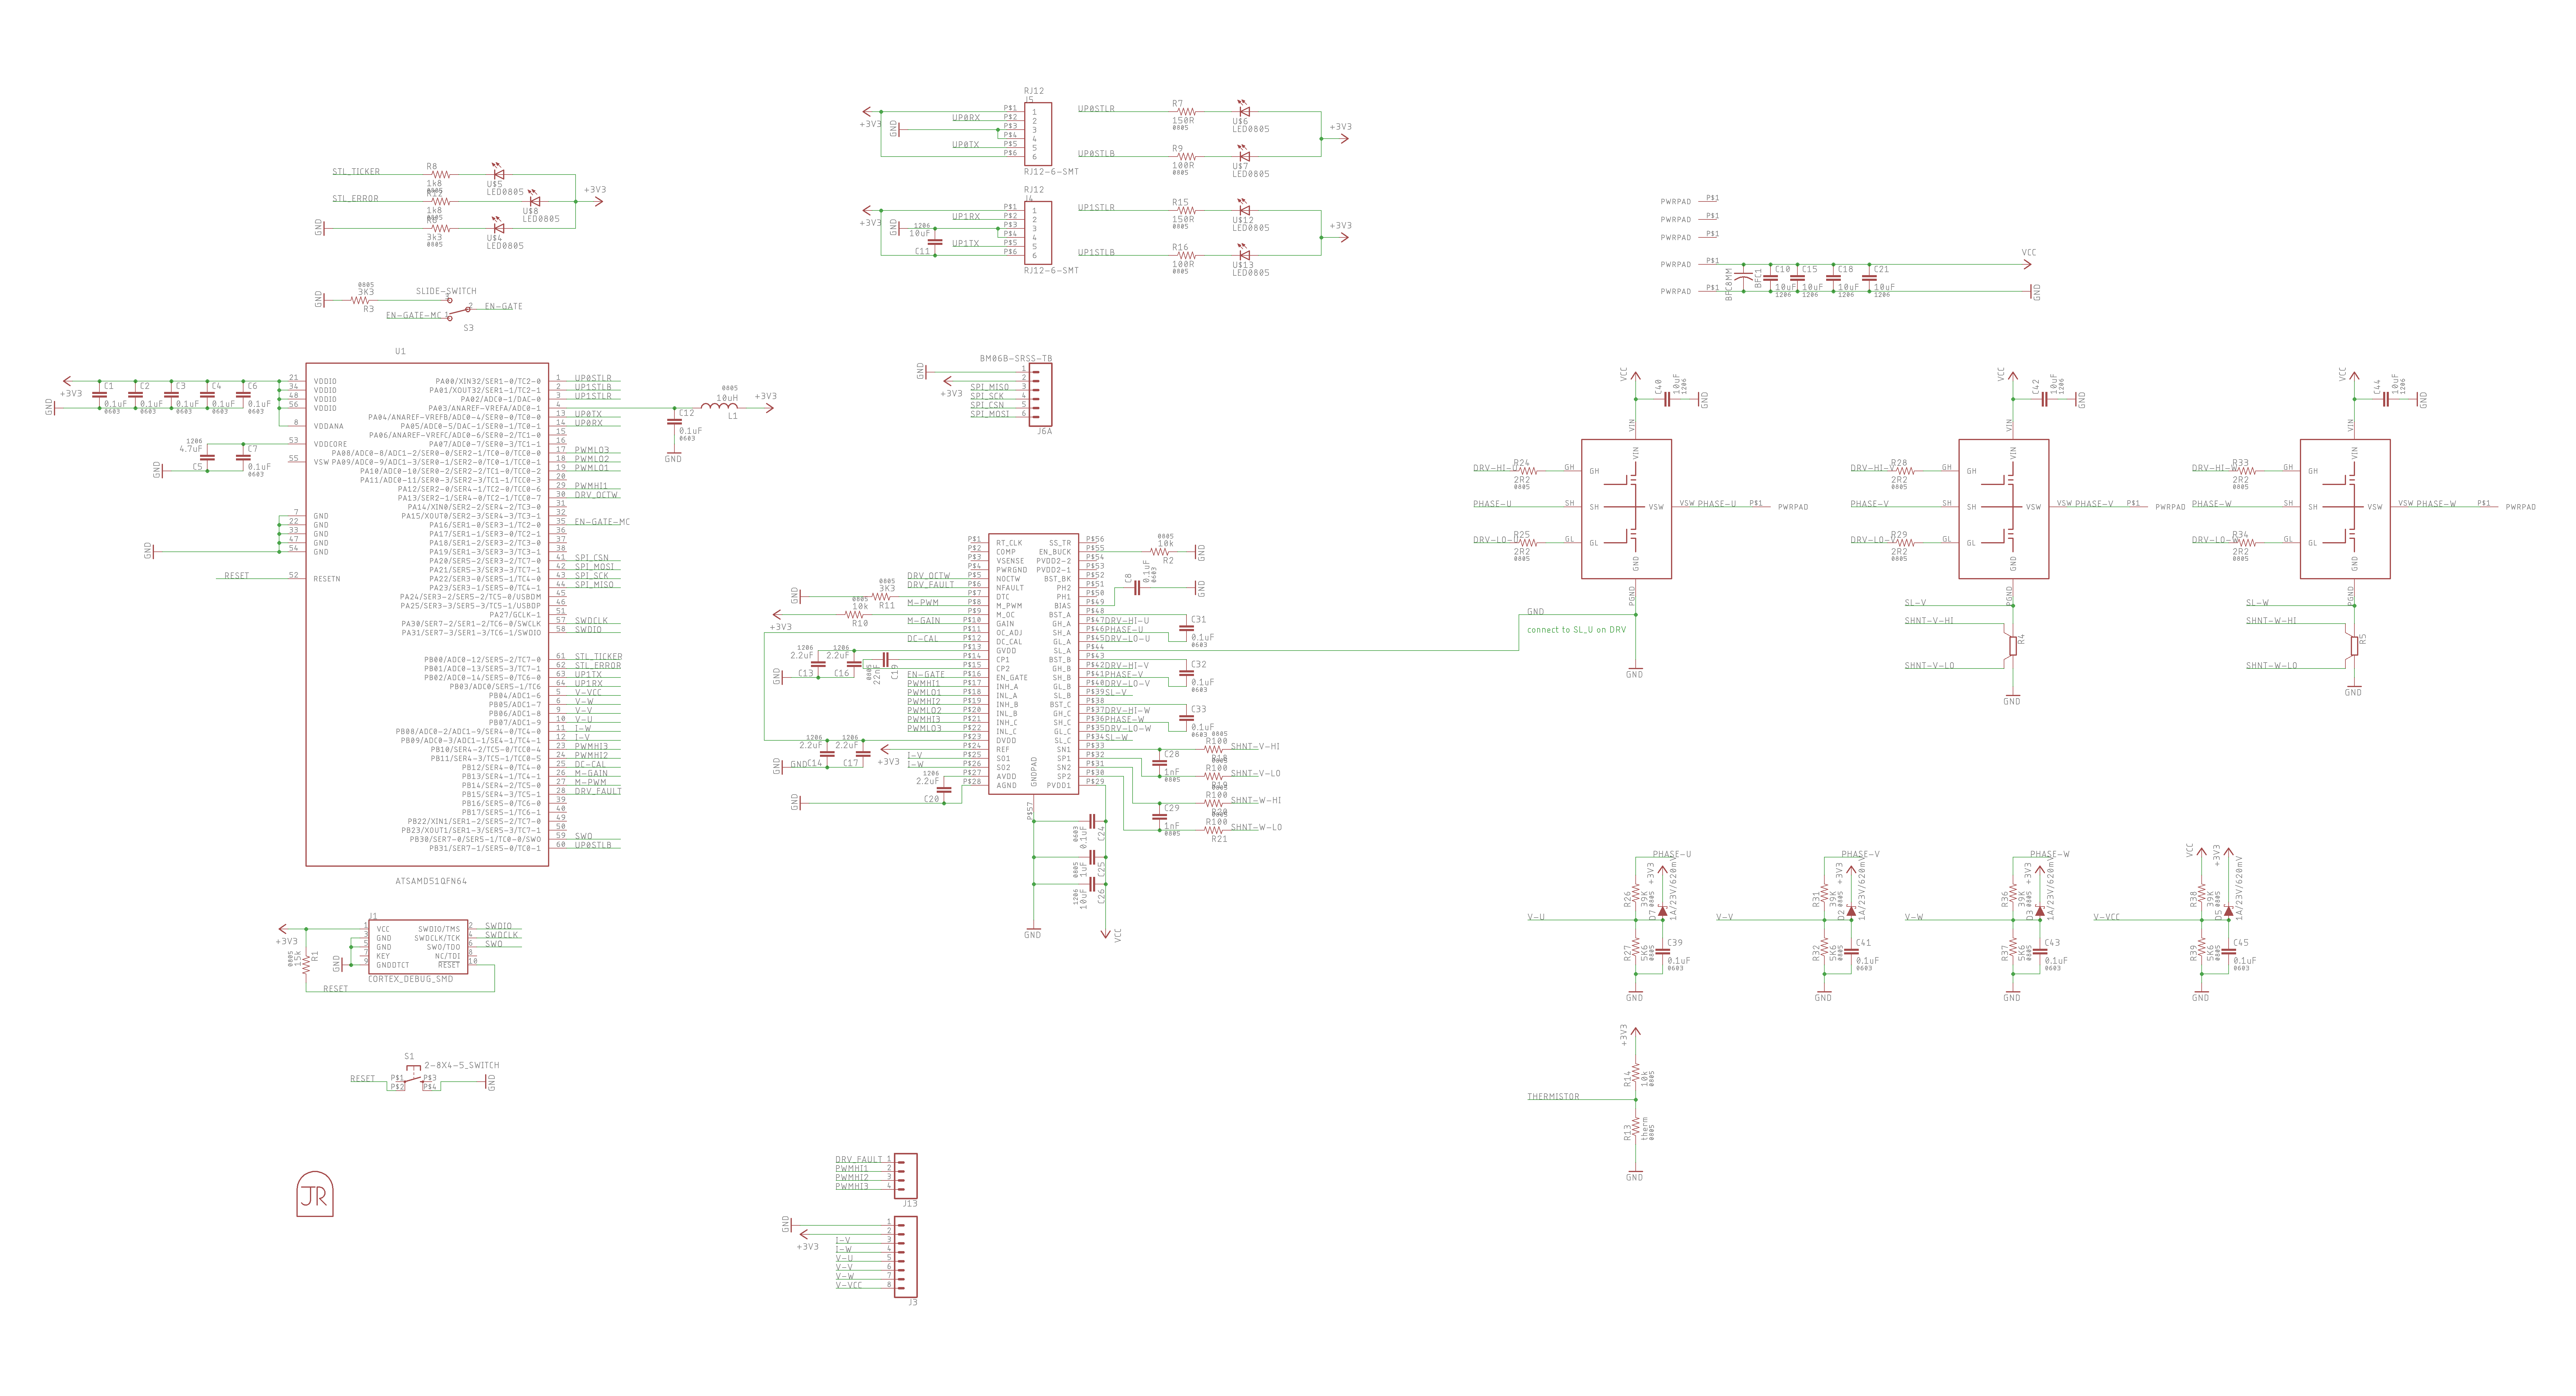 images/schematic.png